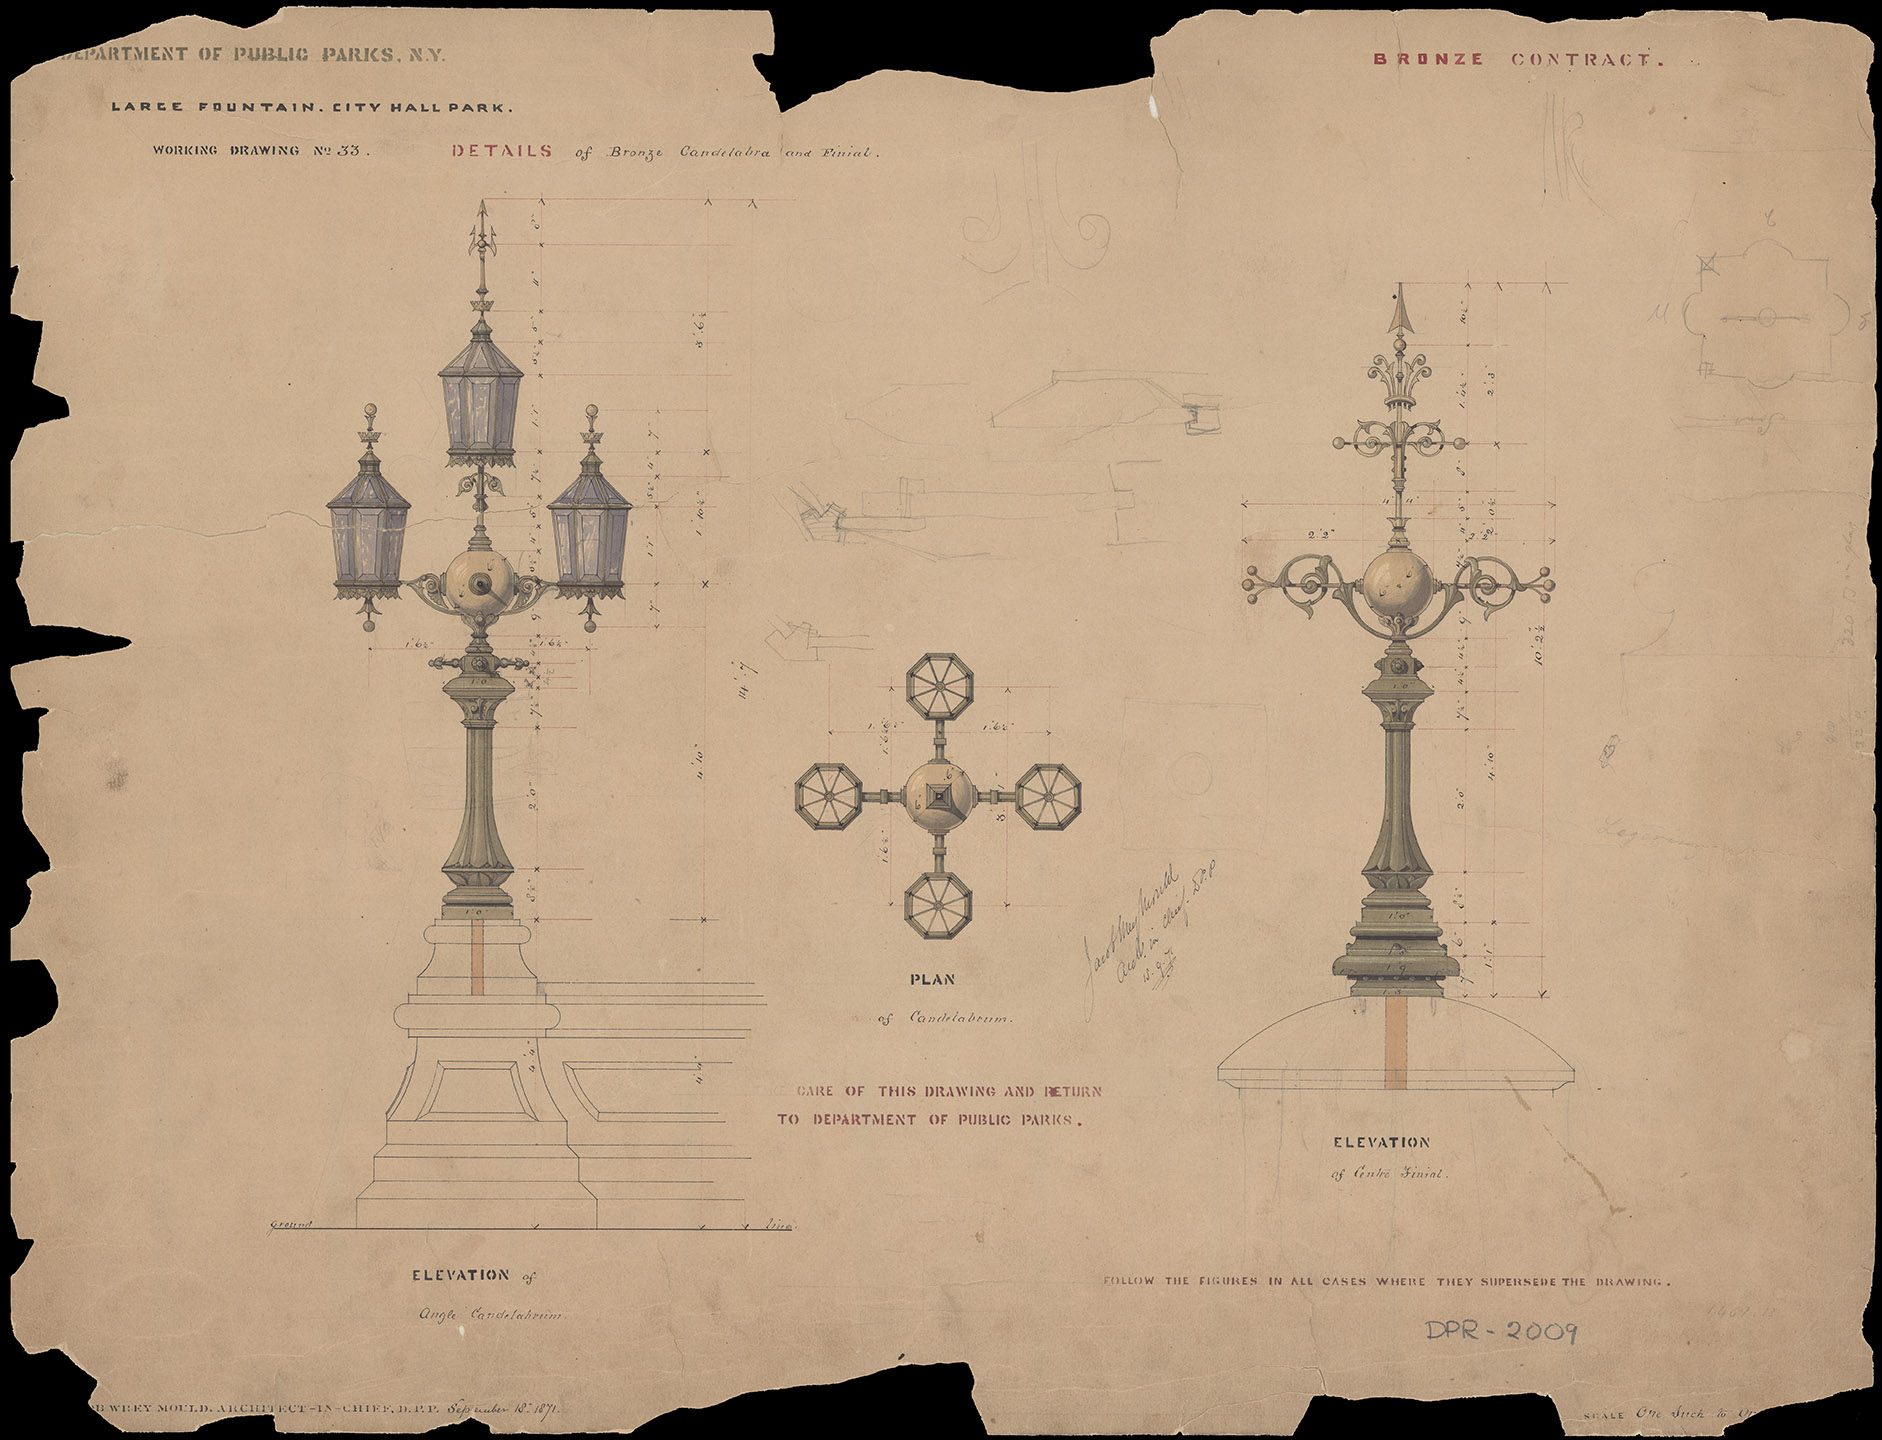 City Hall Park, 1871. Large fountain and details of bronze candelabra. Department of Parks and Recreation collection, New York City Municipal Archives.